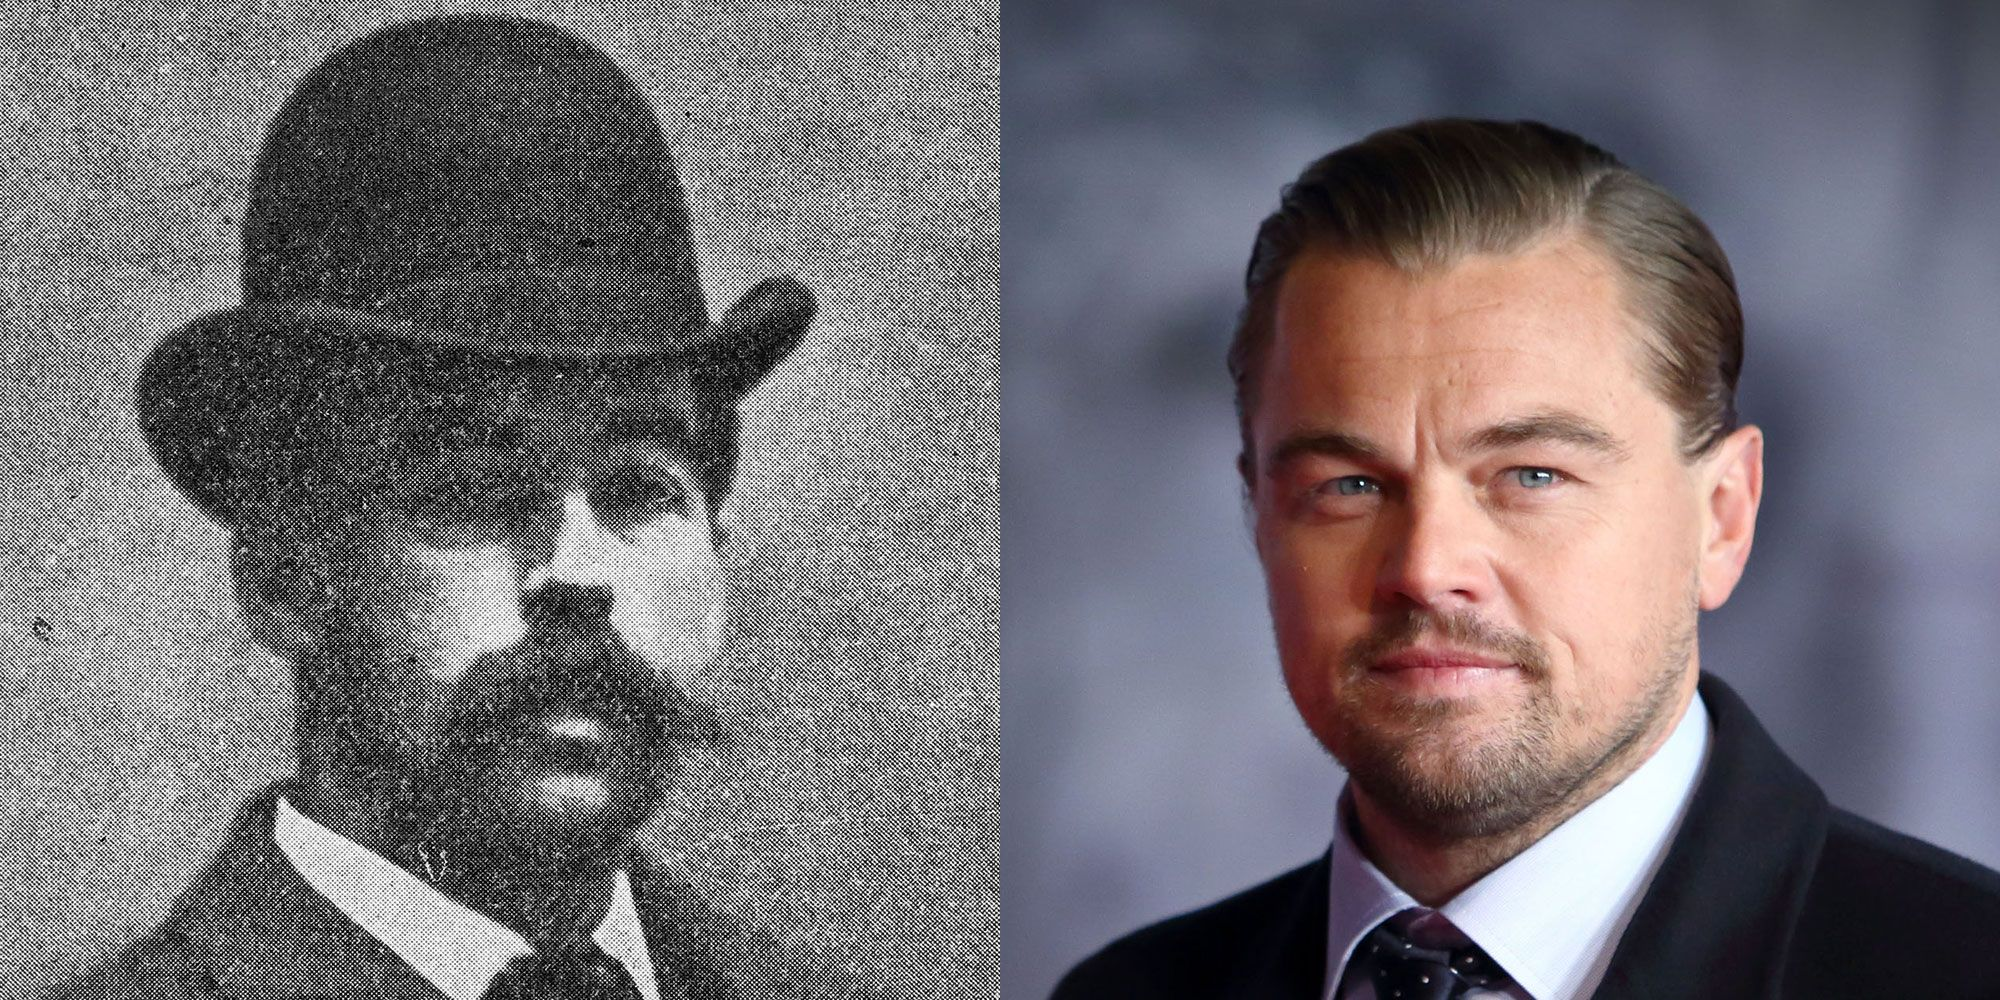 Leonardo Dicaprio Martin Scorsese S Devil In The White City Series News Details On Hulu Show